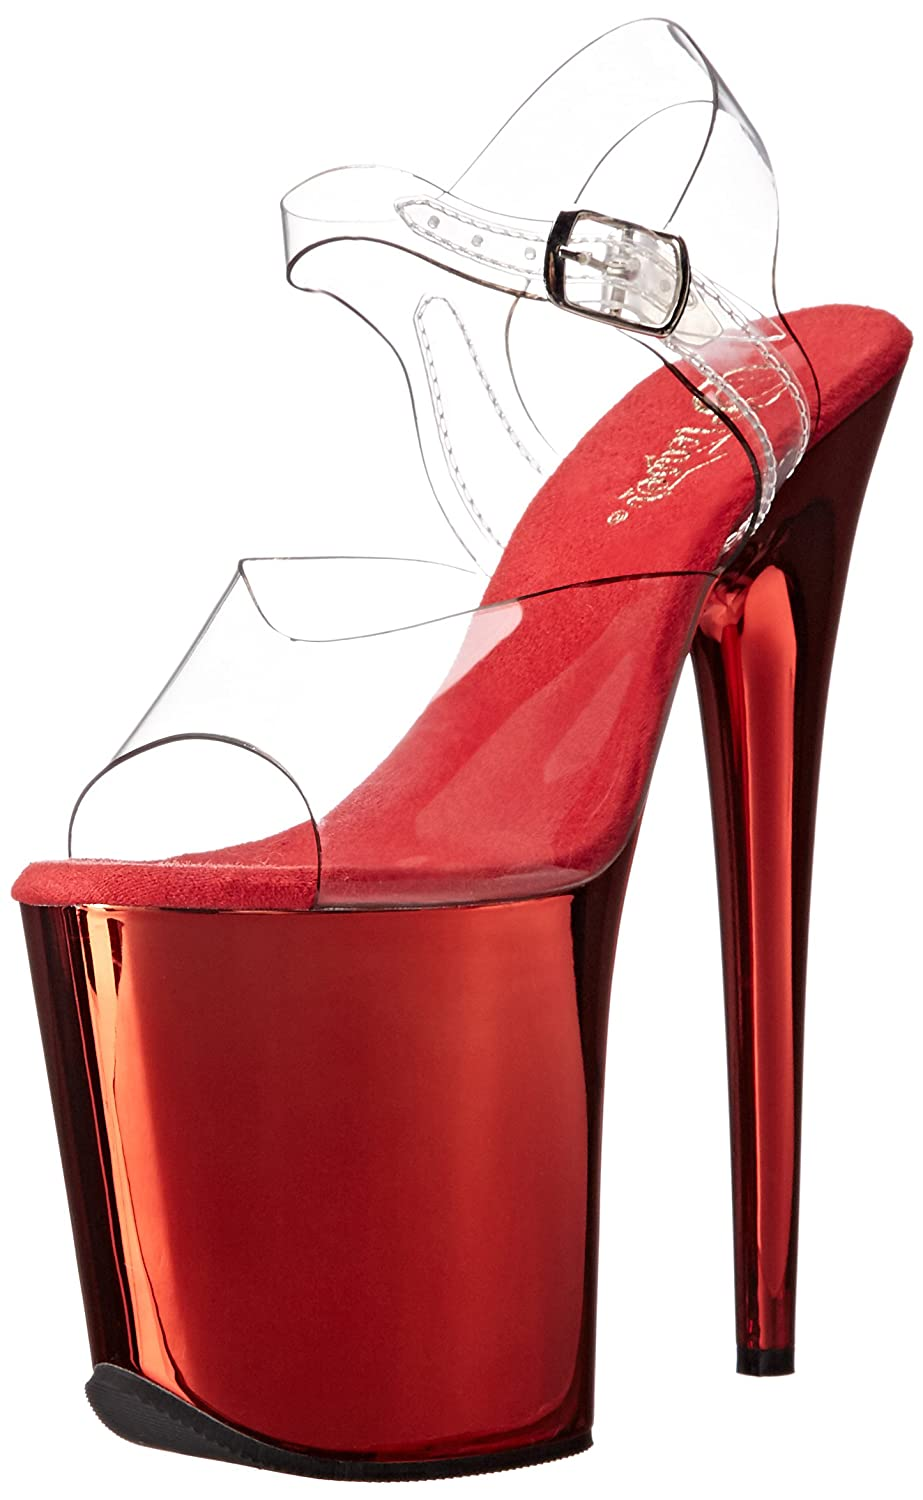 Pleaser Women's FLAM808/C/RCH Platform Dress Sandal B017U9OJK0 11 B(M) US|Clear/Red Chrome